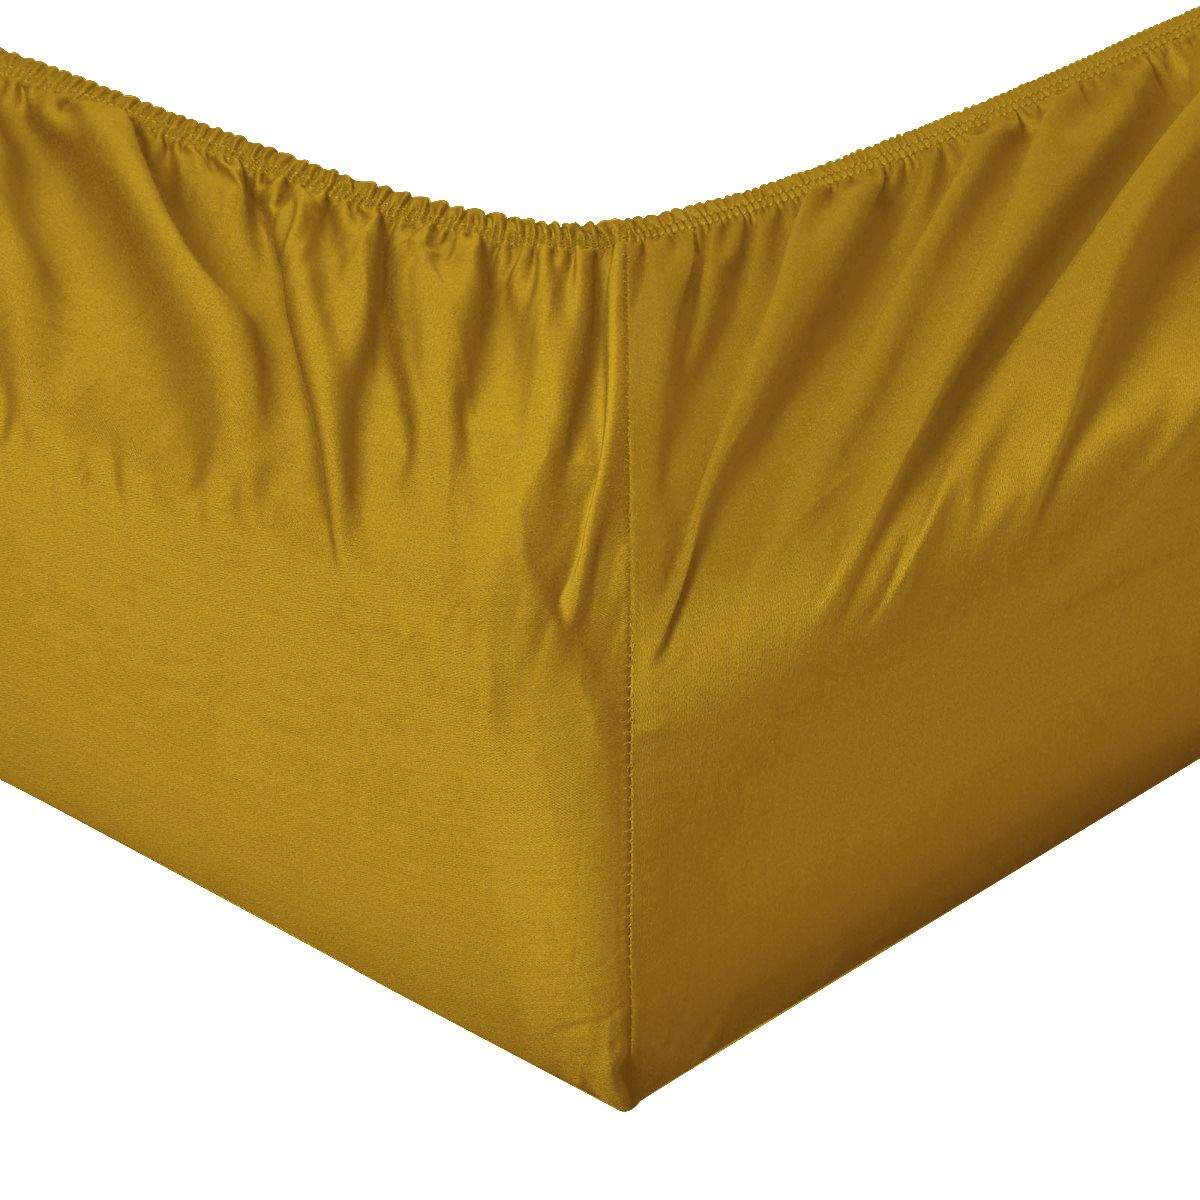 Microfiber Interlock Fitted Sheets